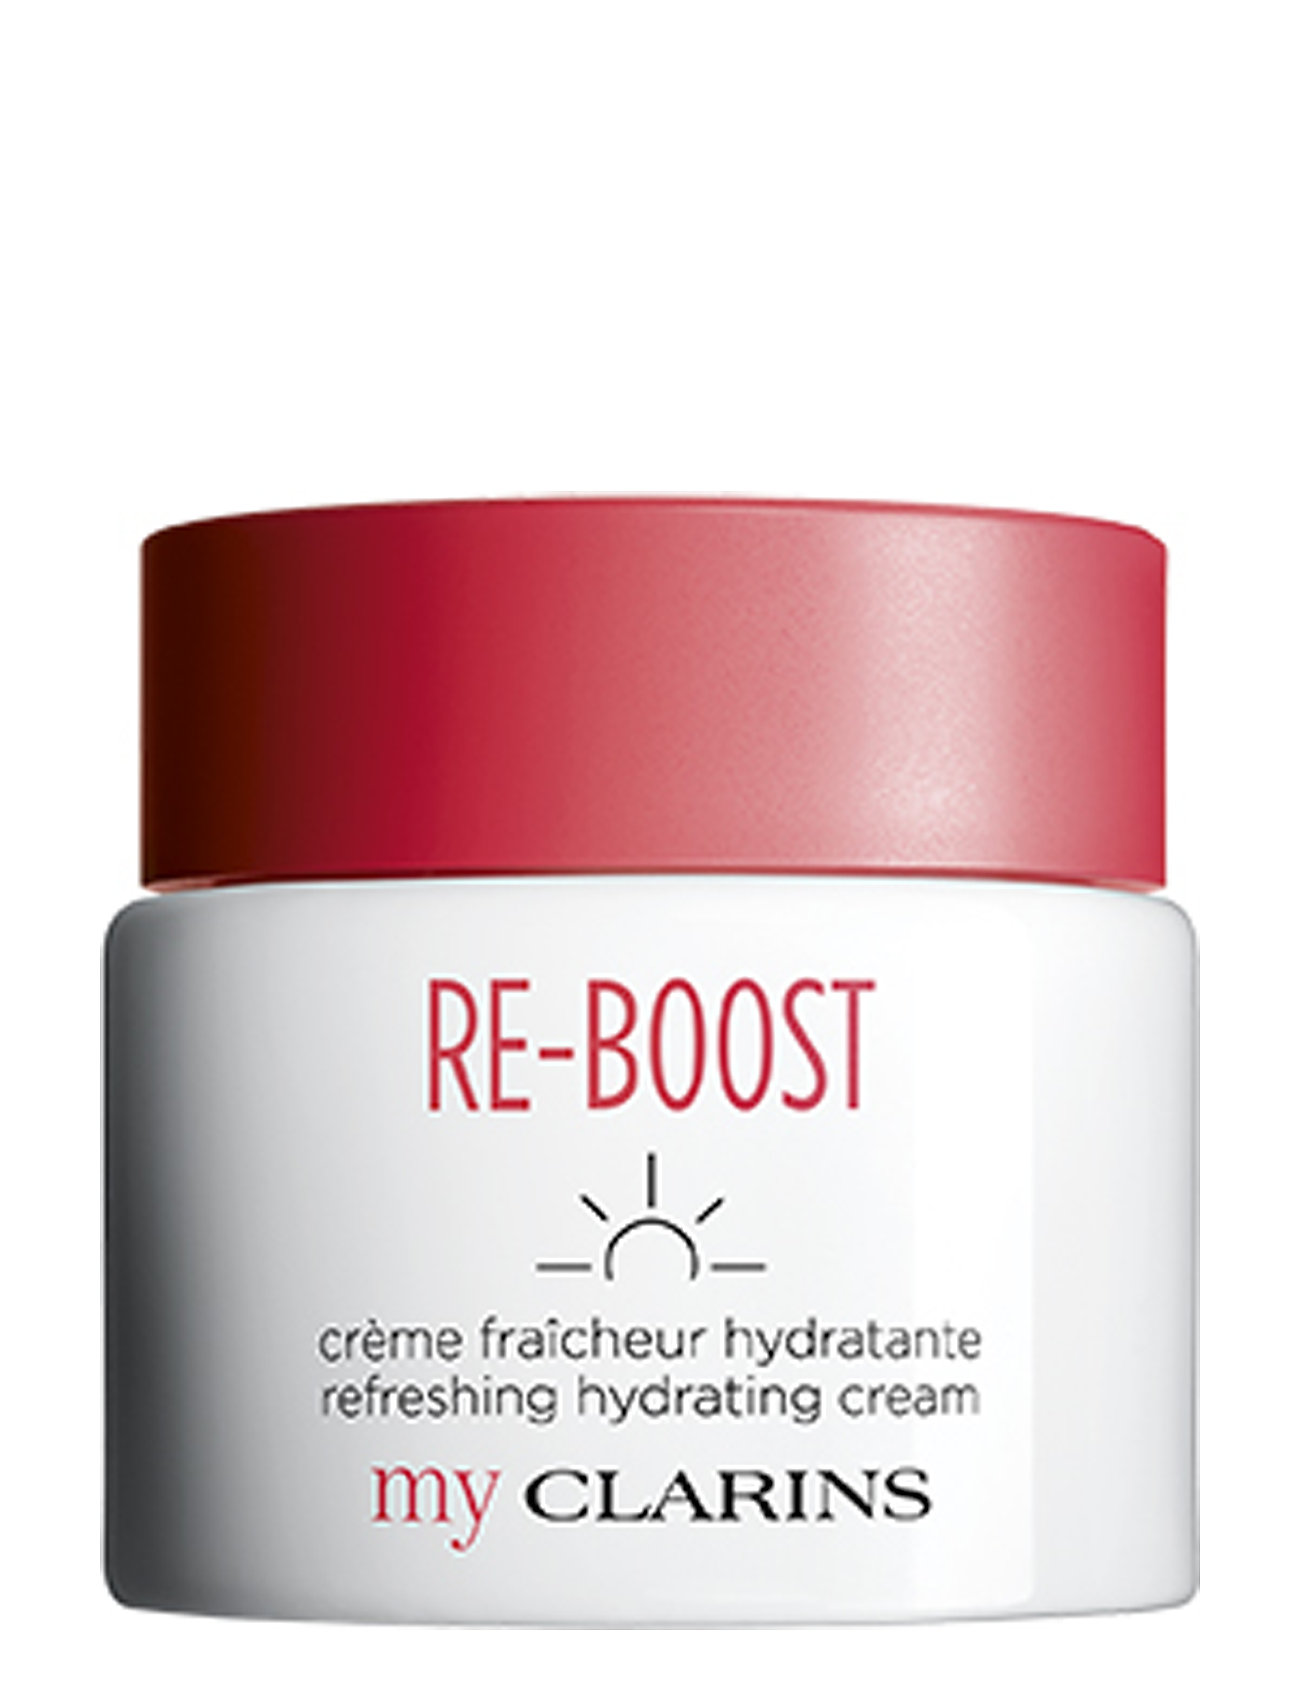 Image of My Clarins Refreshing Hydrating Cream Ast Beauty WOMEN Skin Care Face Day Creams Clarins (3409654899)